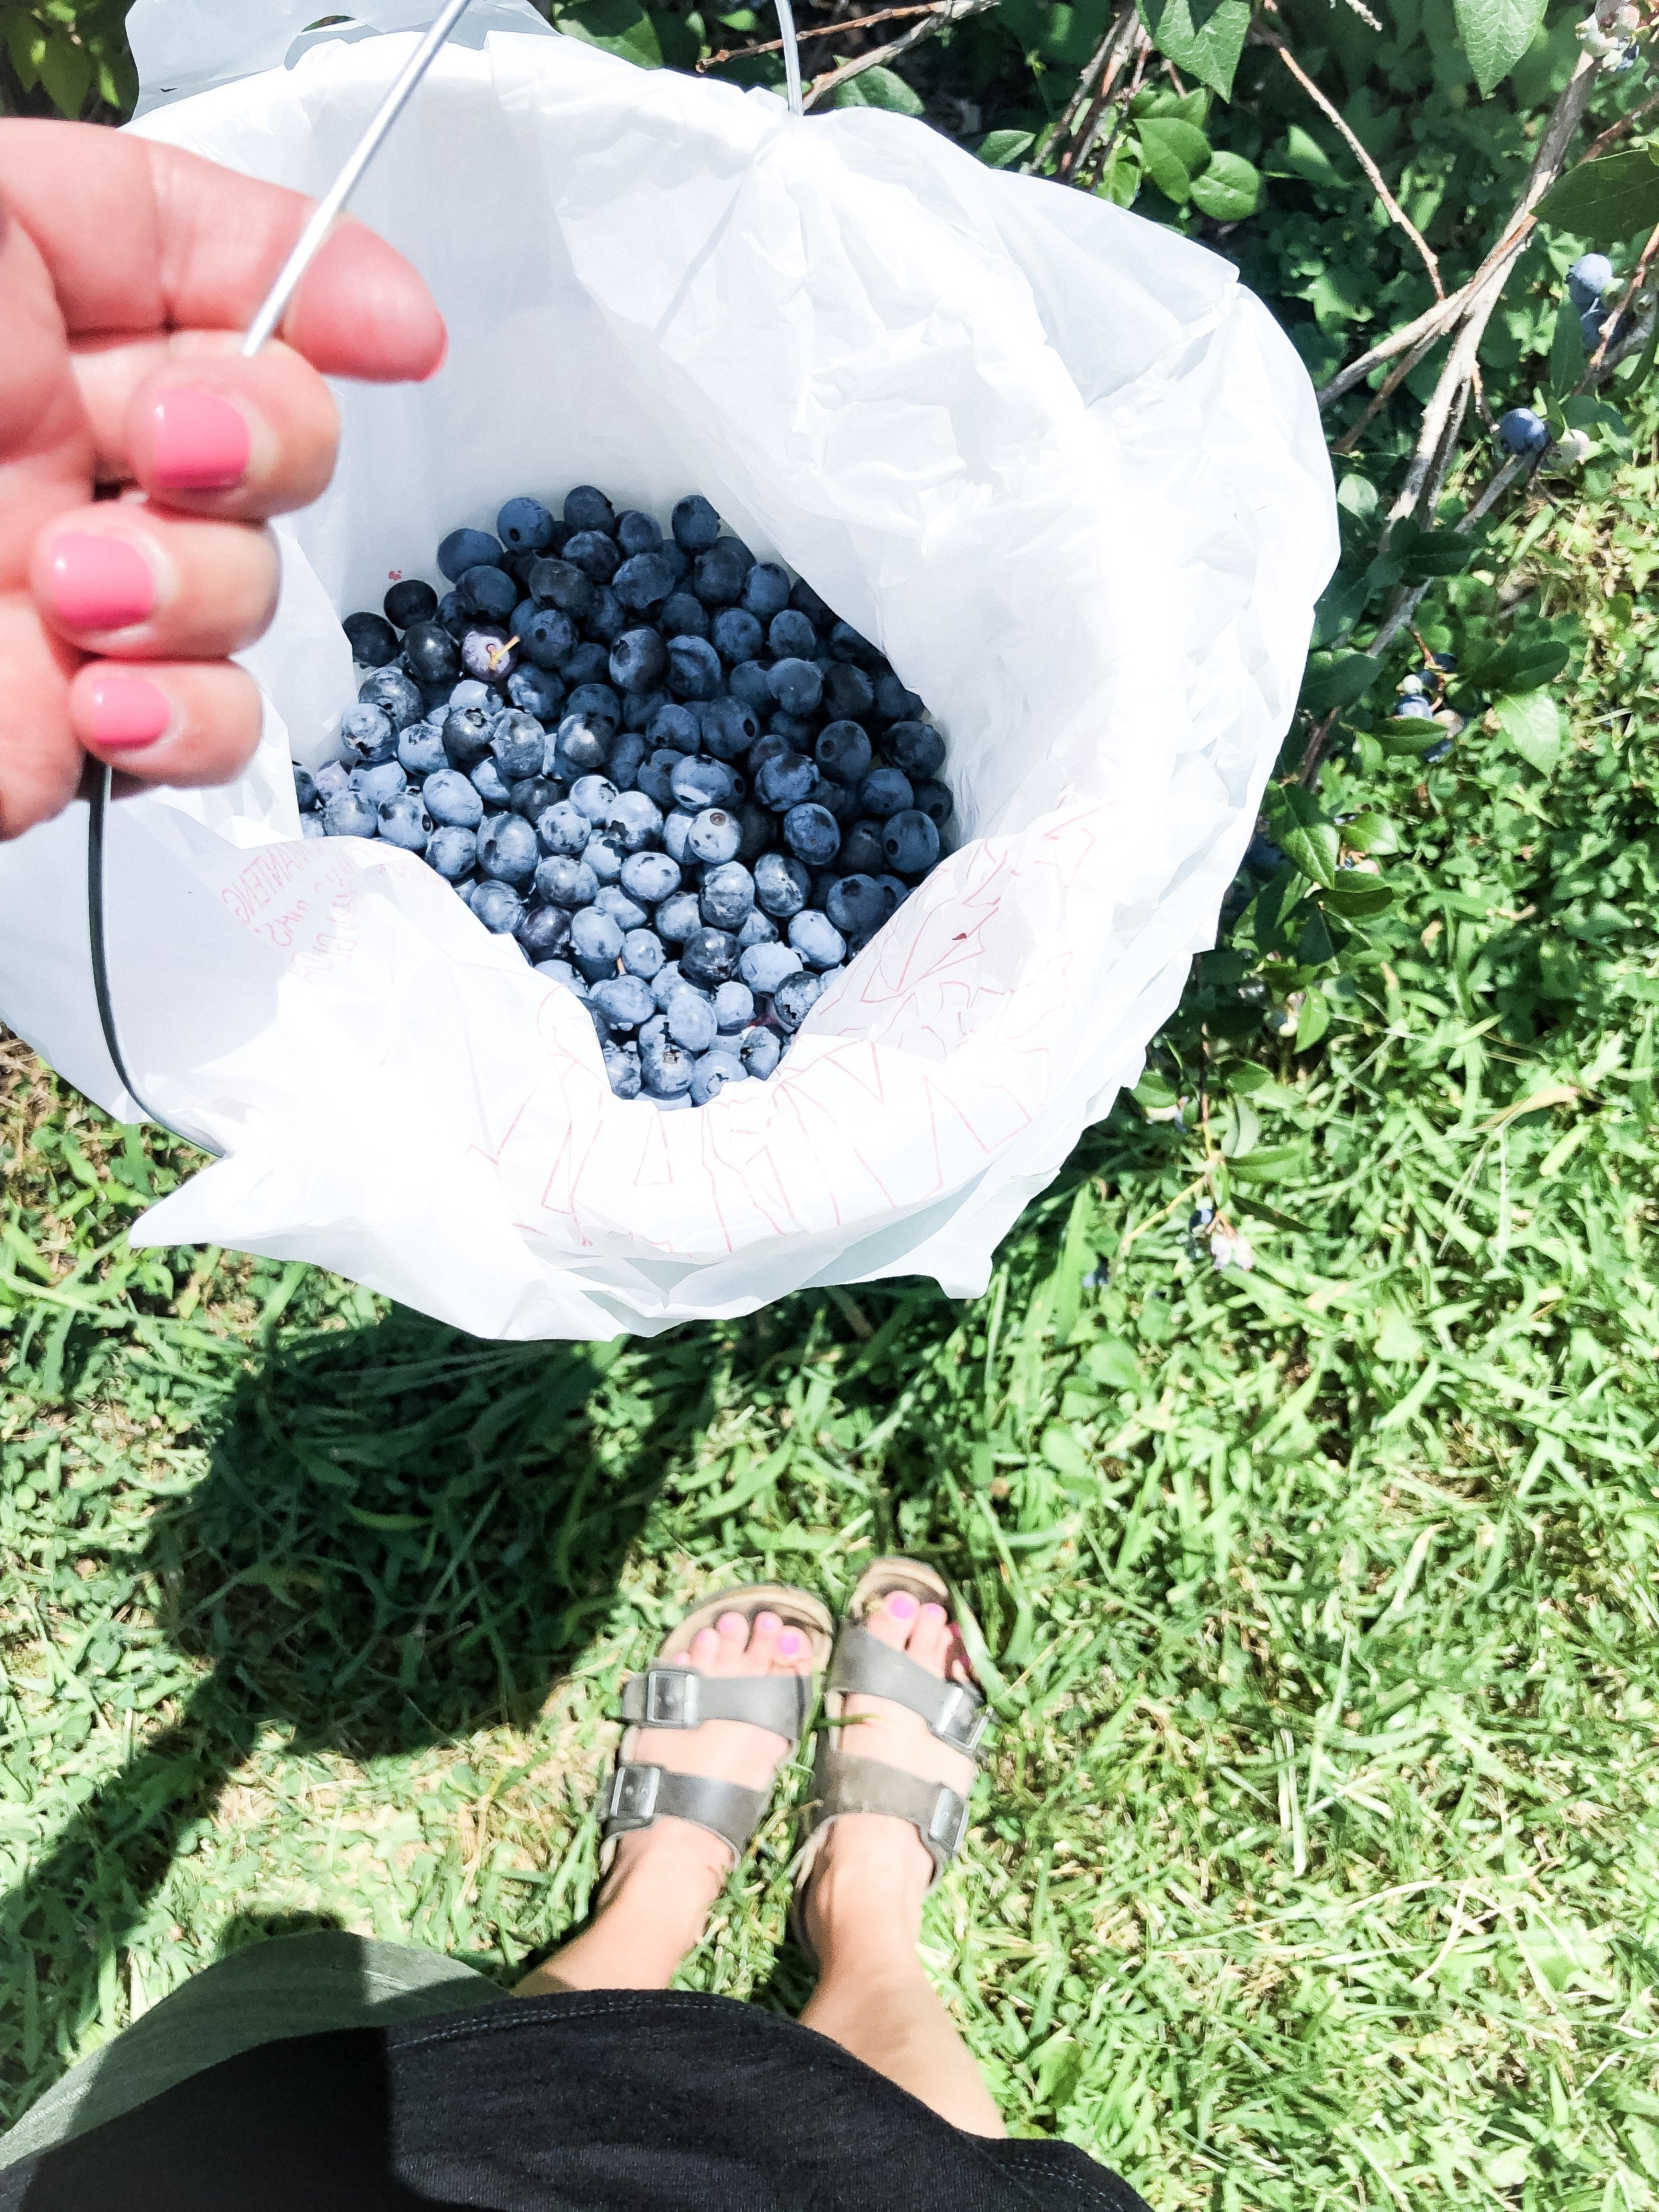 It was hot out the day we picked berries, so I didn't get as many as I'd hoped. It was still enough to make this delicious blueberry crisp recipe.